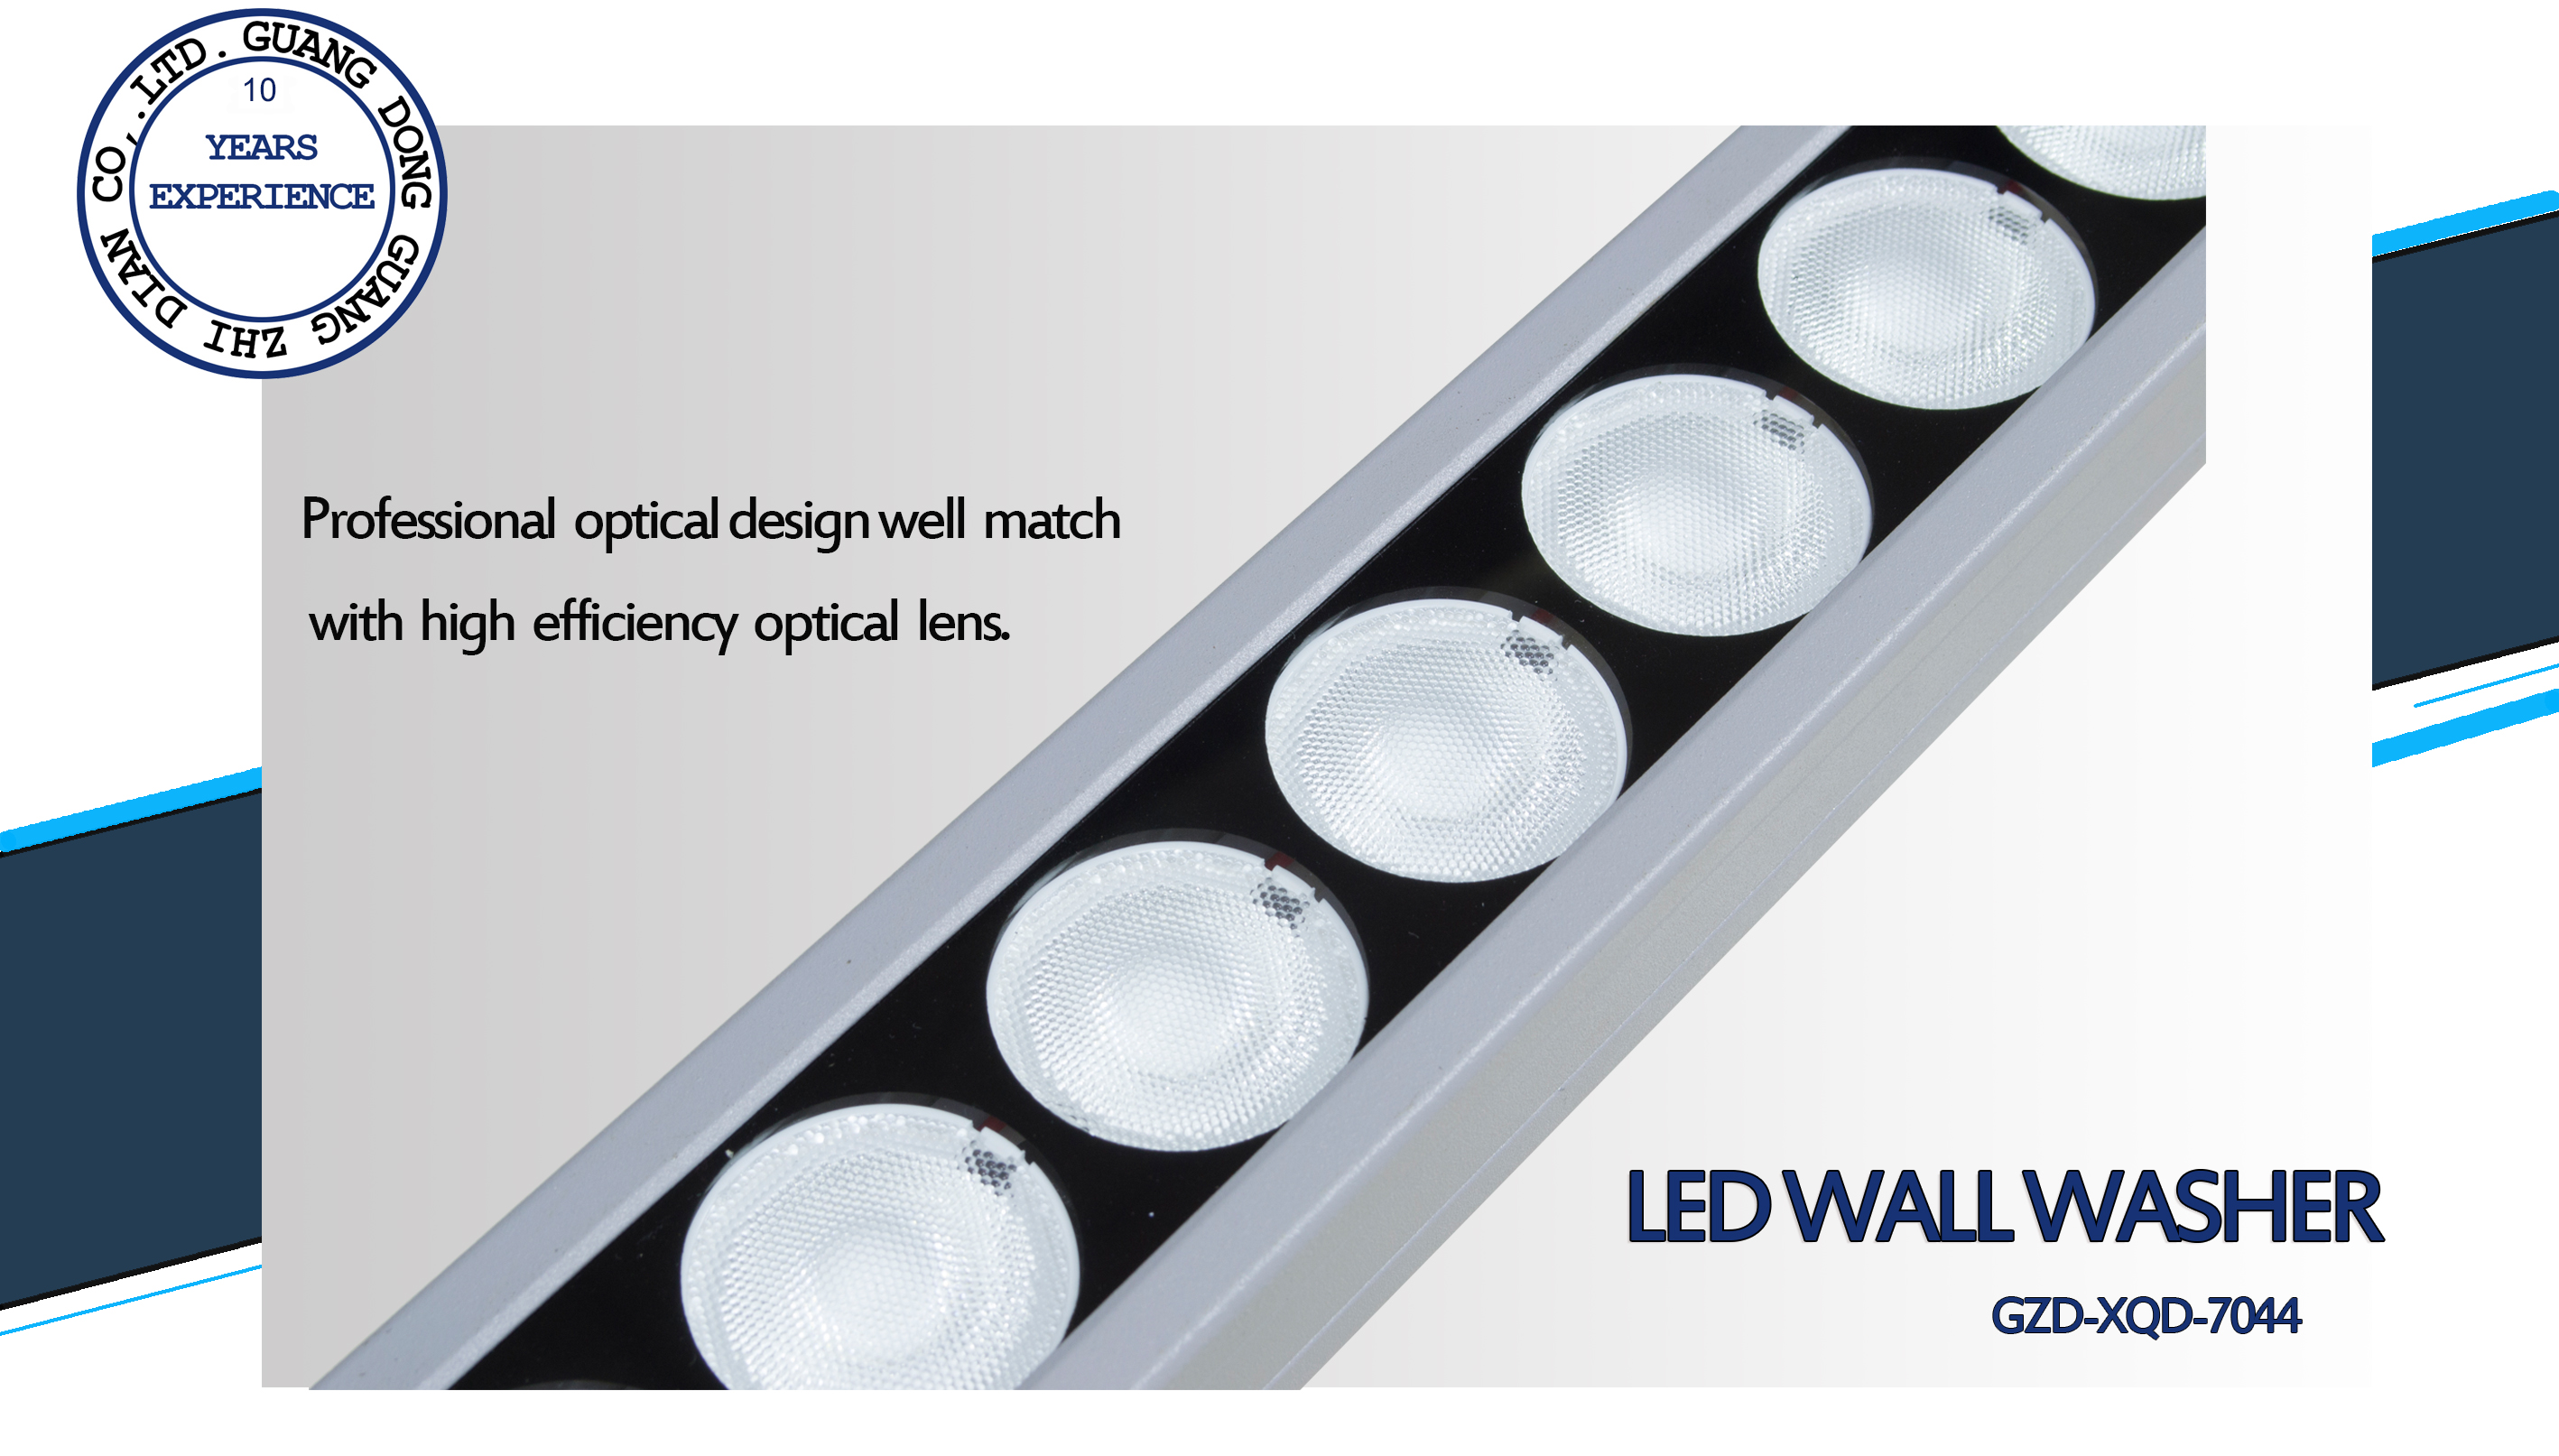 3 led wall washer-